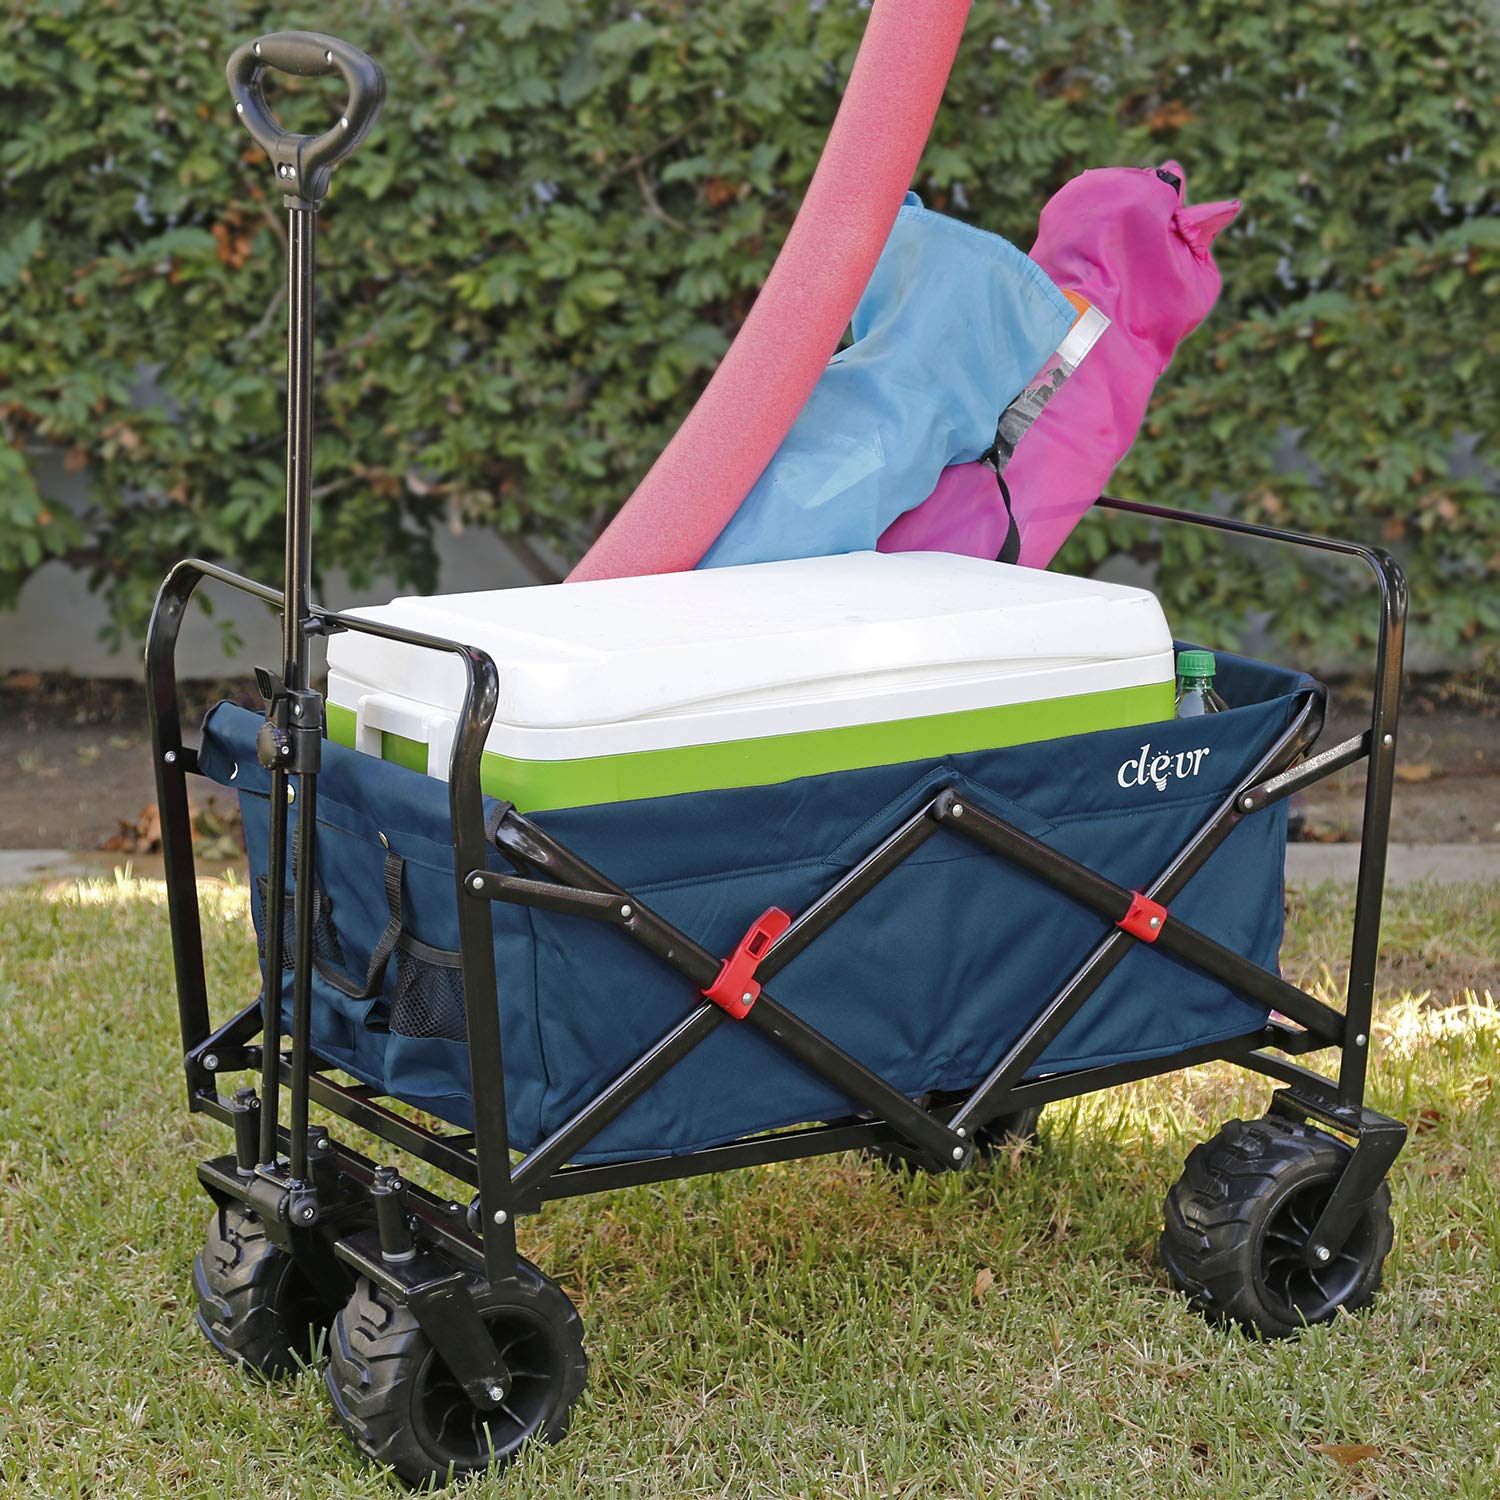 Clevr Collapsible Foldable Outdoor Wagon Cart with Large All Terrain Wheels, Blue 265 Lb Capacity, Easy Folding Utility Garden Transport Trolley, Great for Parties, Shopping, Beach, Park, Sports by Clevr